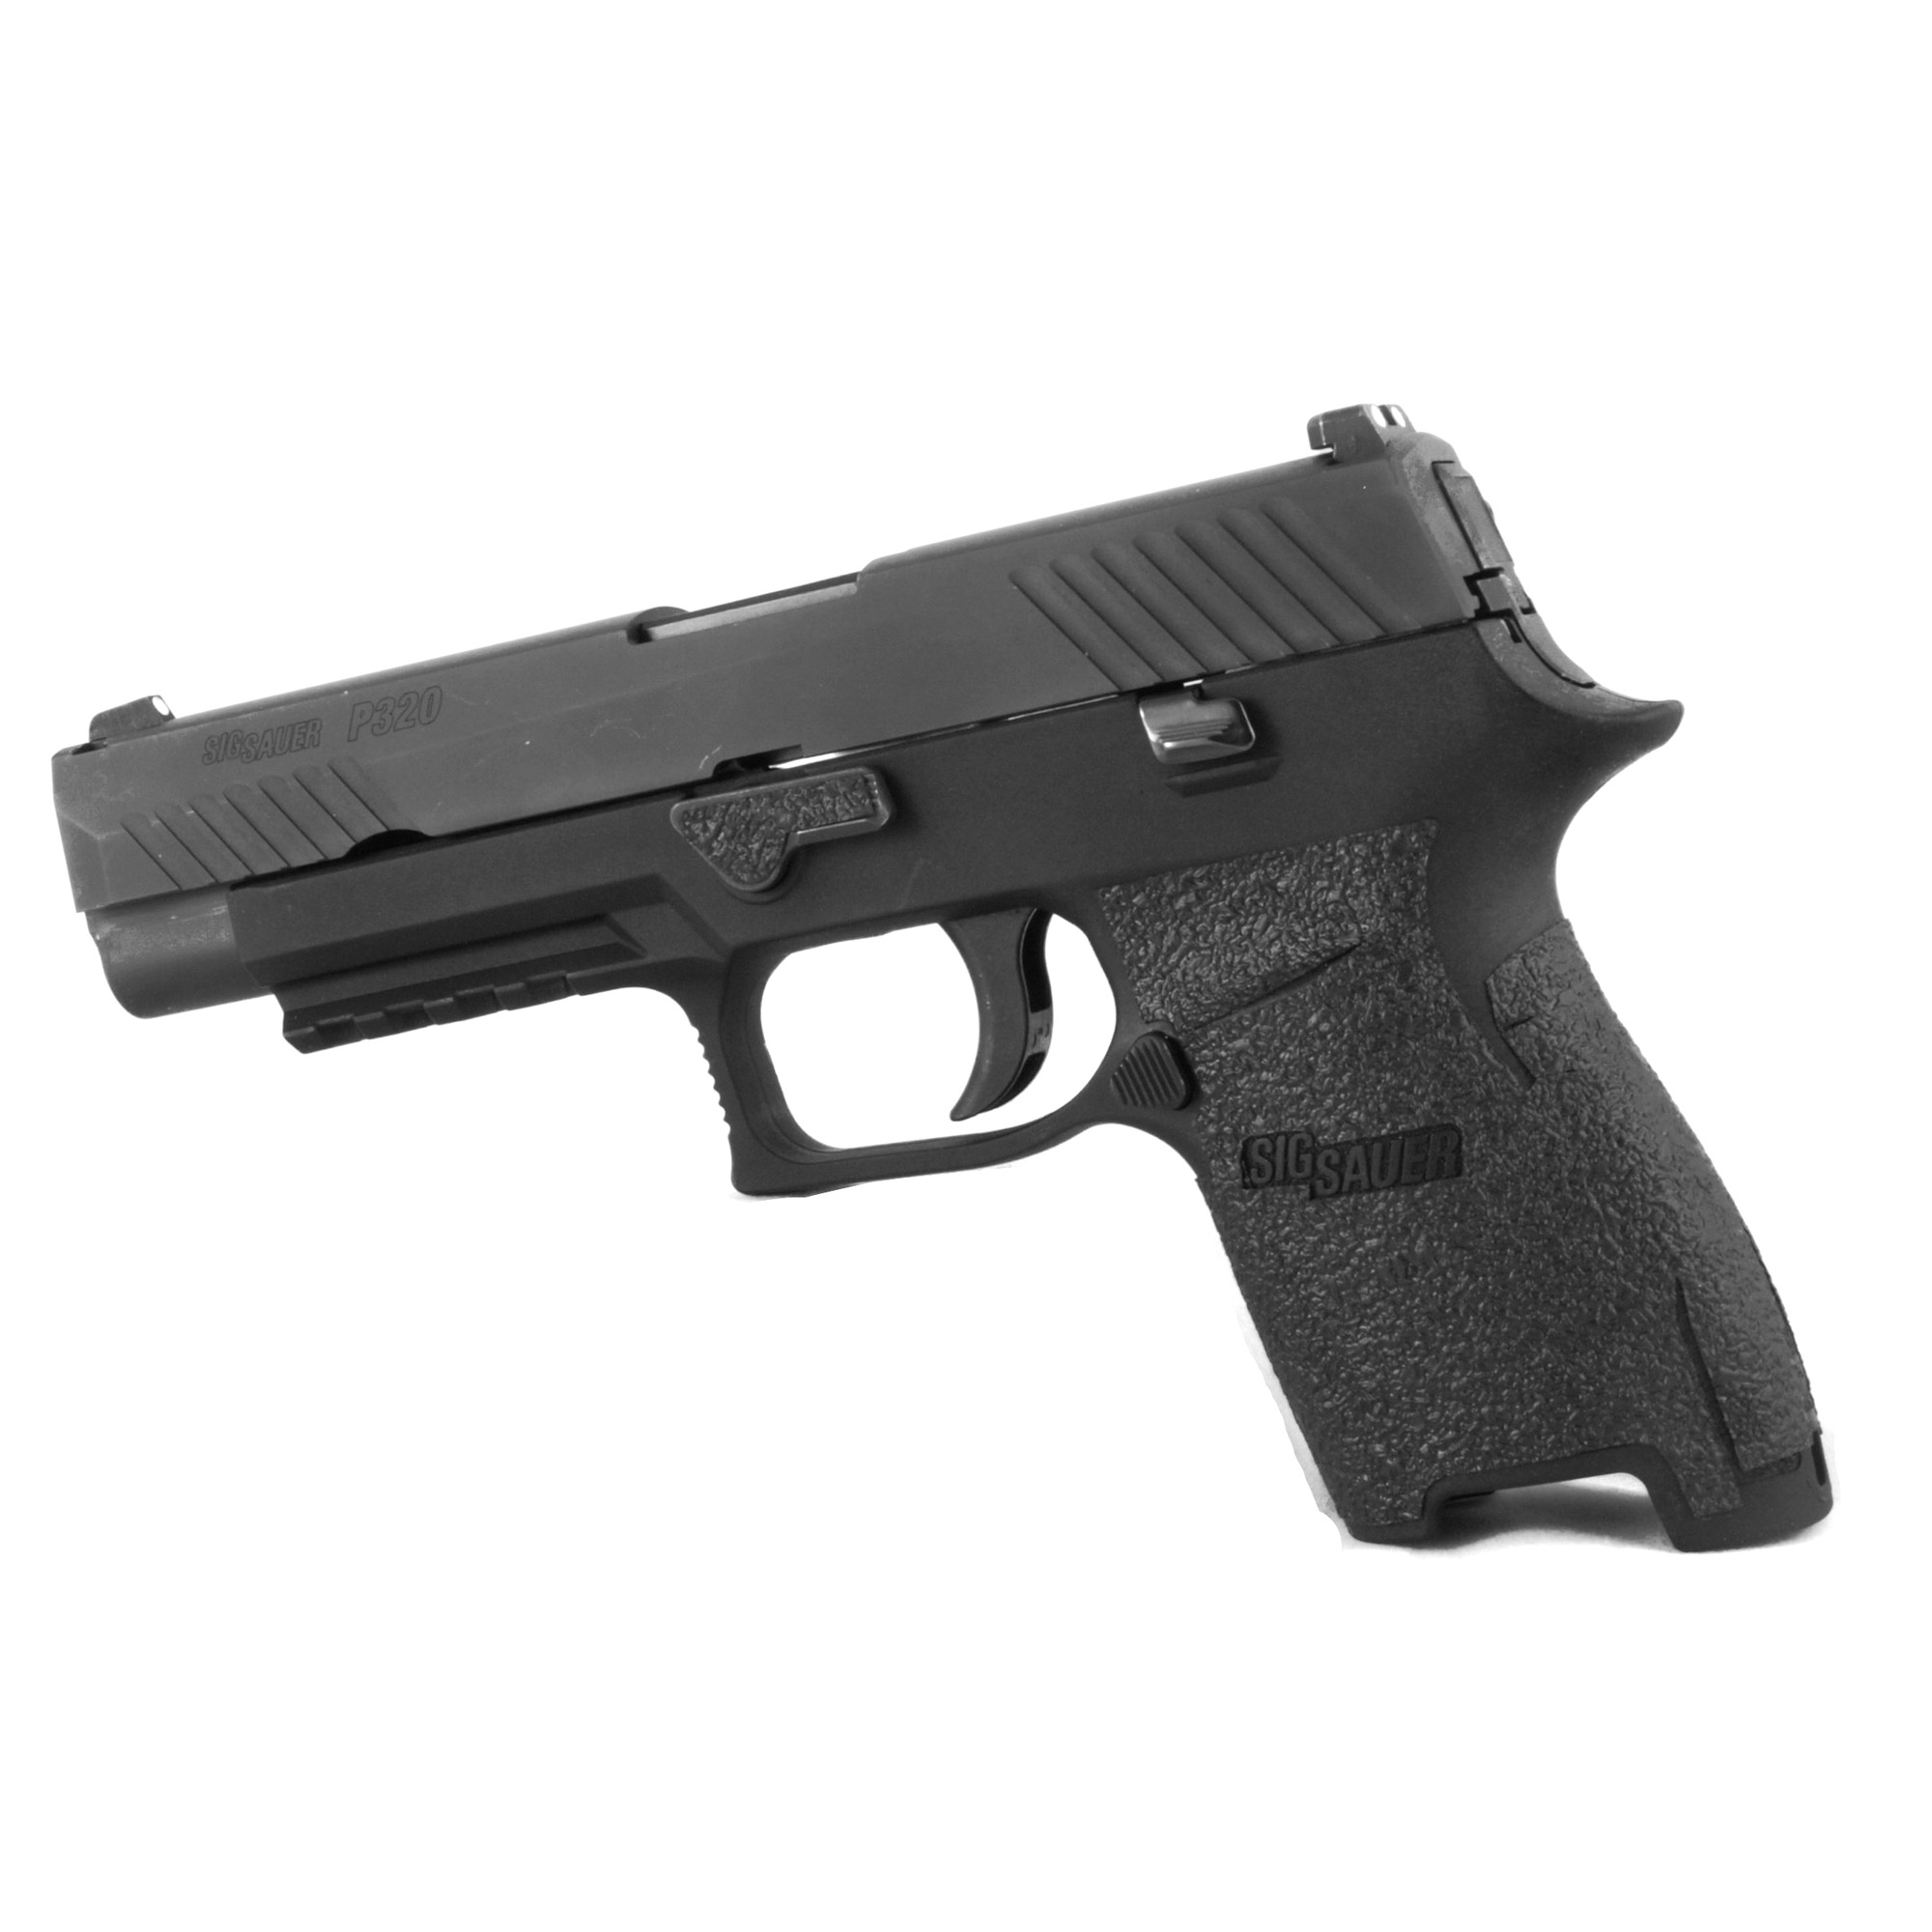 """TALON Grips for Sig Sauer P250 and P320 9mm/.357/.40./45 Compact with the medium module. This rear wrap grip is in rubber texture and offers full side panel coverage including the thumb rest area"""" full coverage under the trigger guard"""" and high coverage on the backstrap. This grip has a graphic cutout for the Sig Sauer emblem."""